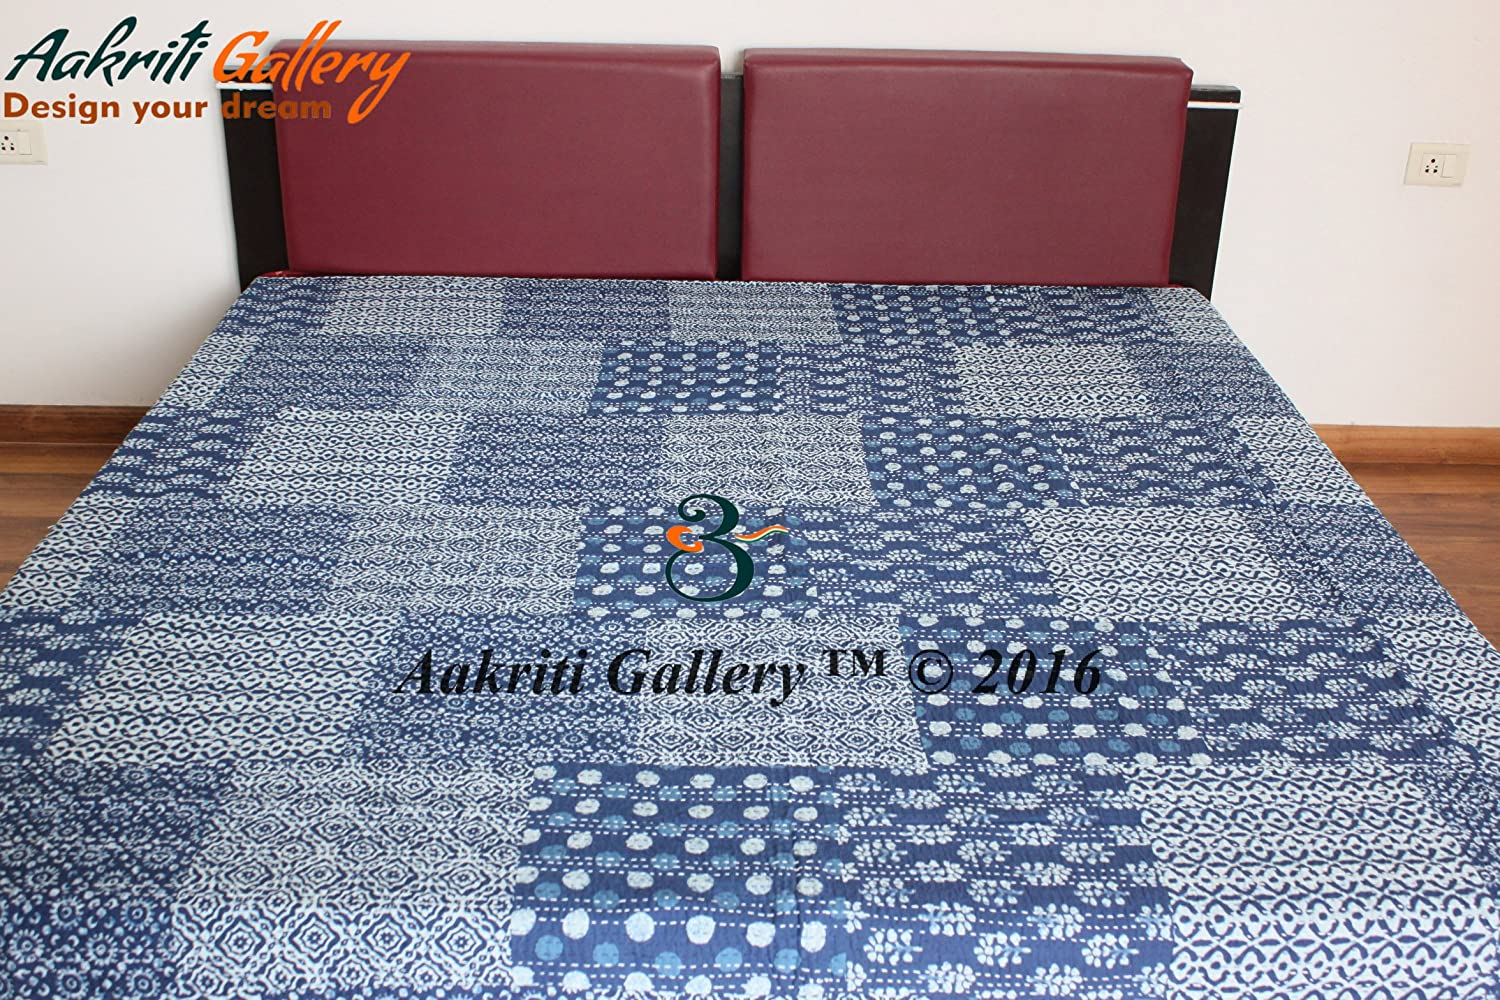 Aakriti Gallery Kantha INDIGO Print 100% cotton Bedspread Printed Quilt Throw Indian Handmade bedsheets (Double with 2 cushion covers, Indigo) KQDIN011